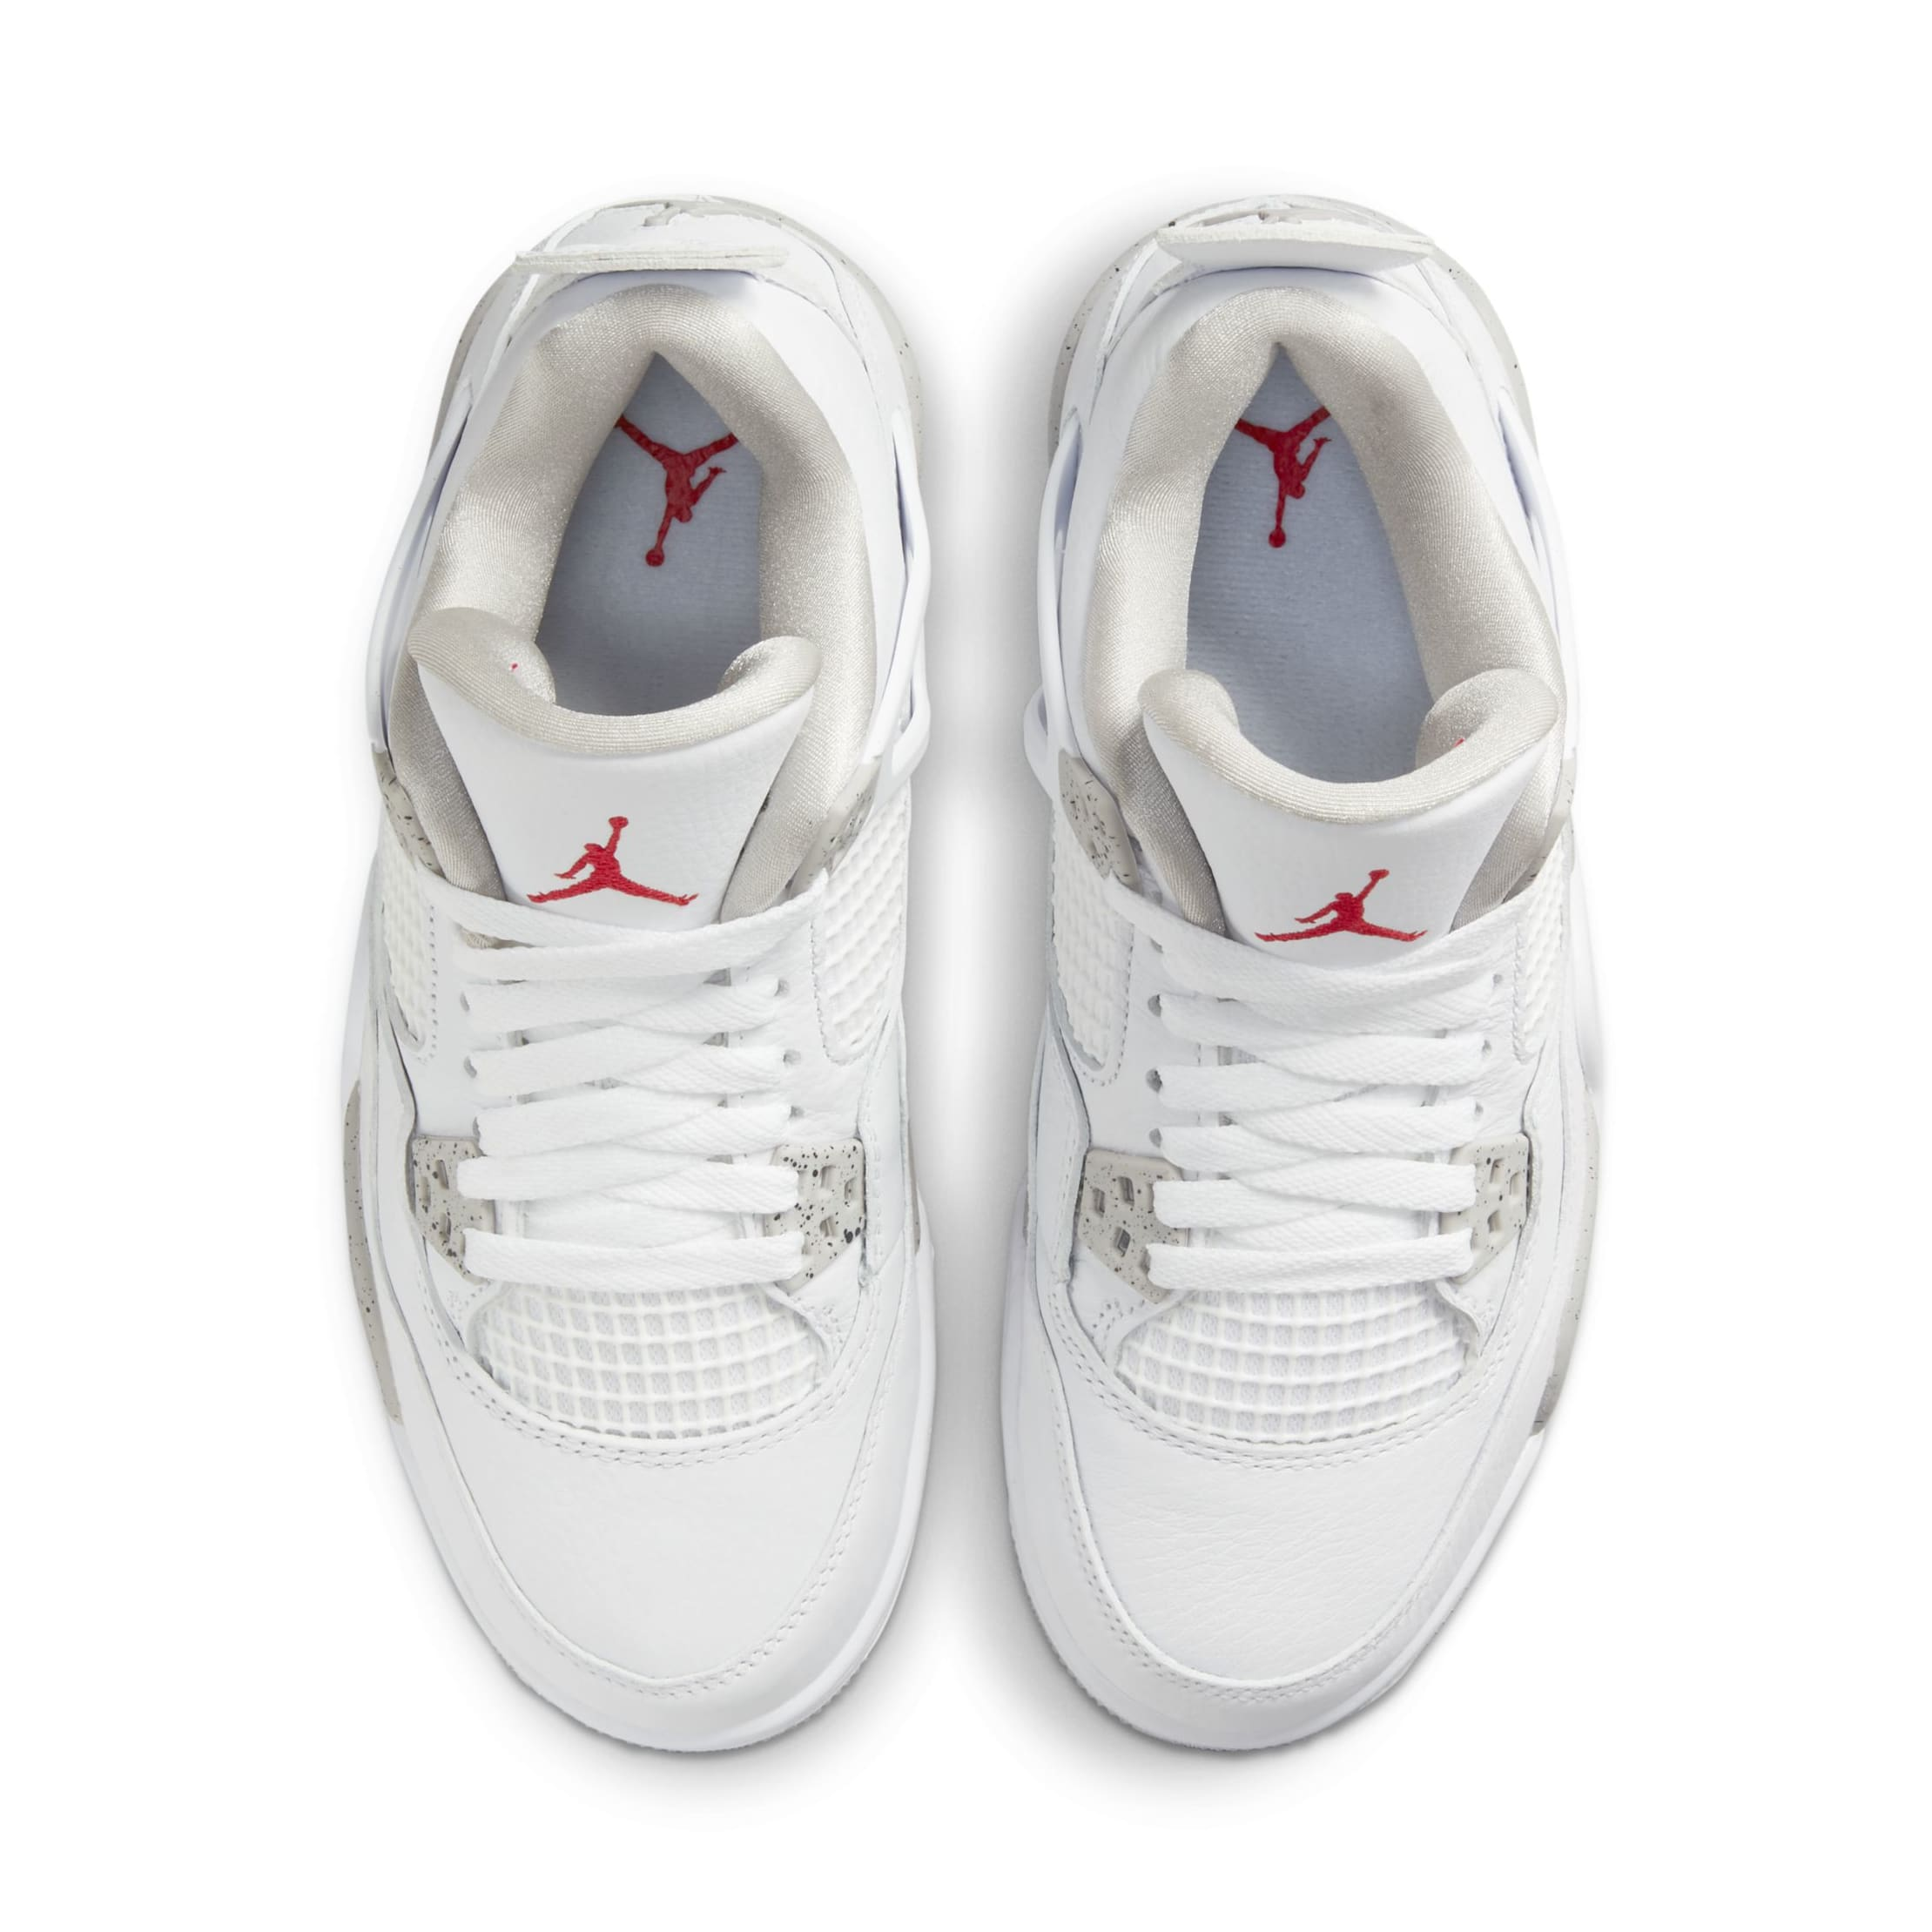 Air Jordan 4 White/Tech Grey/Black/Fire Red CT8527-100 Top